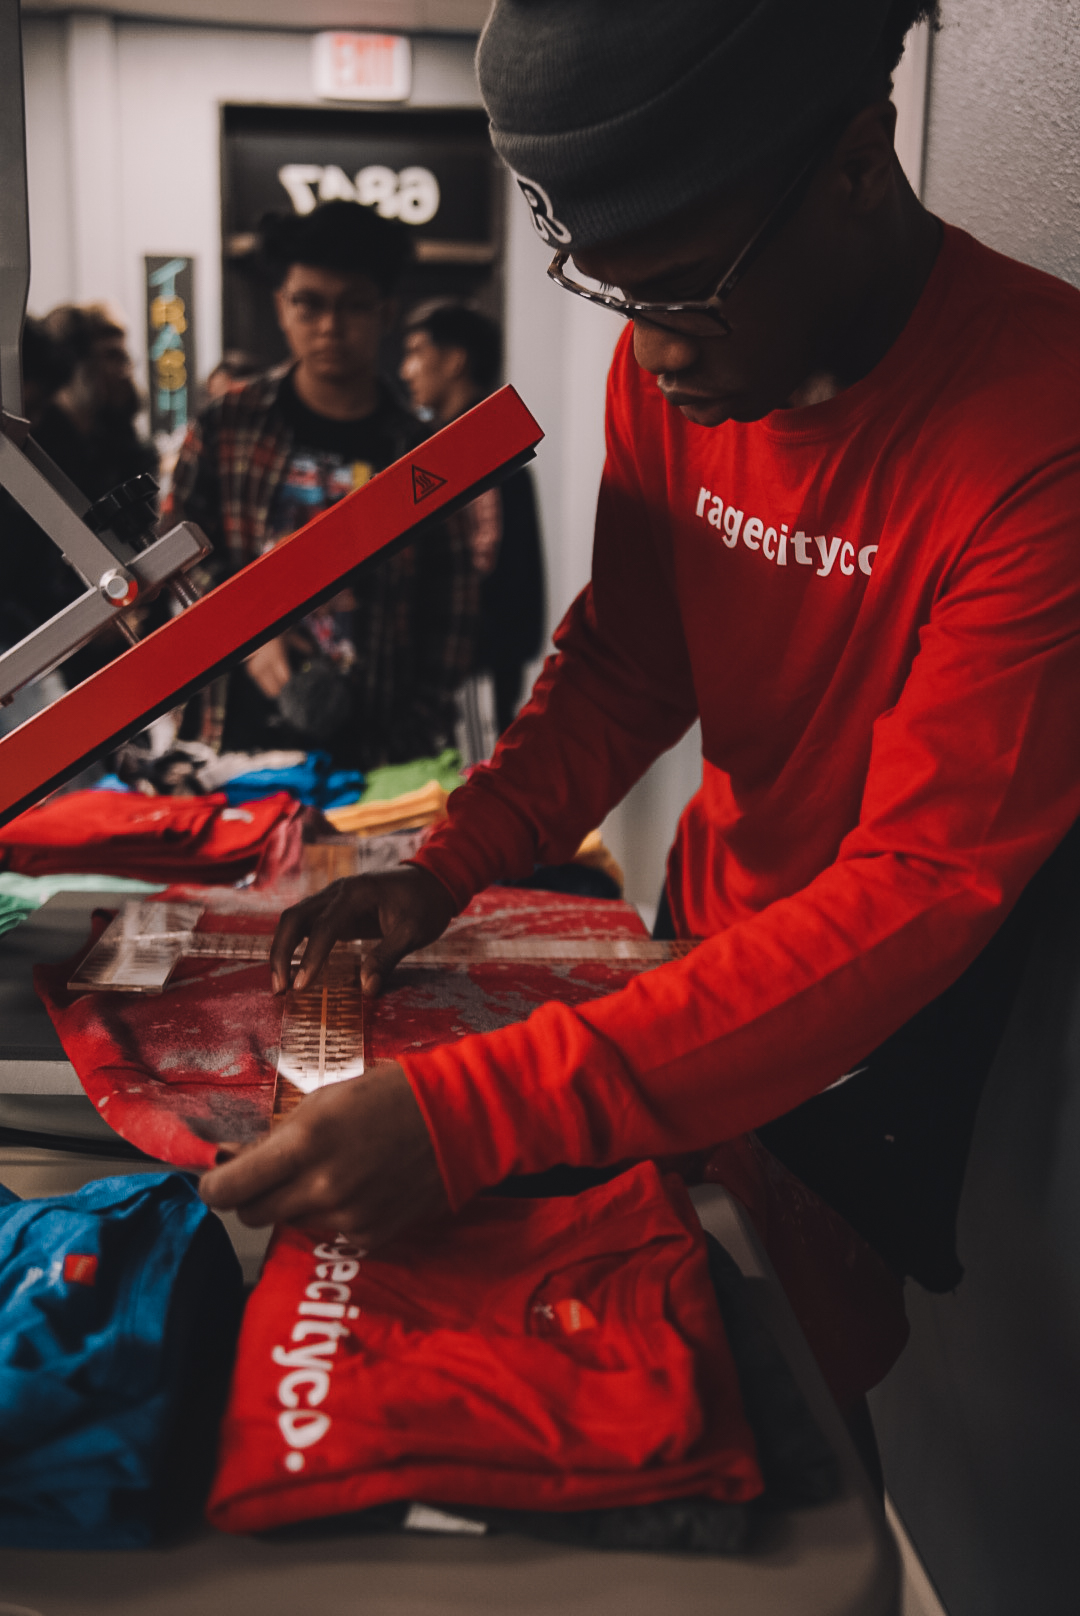 Deven Jackson prints T-shirts at an event in Anchorage. Jackson, along with Qyntyn Pilcher, hopes to expand the company throughout the city. Photo credit: Rage City Company